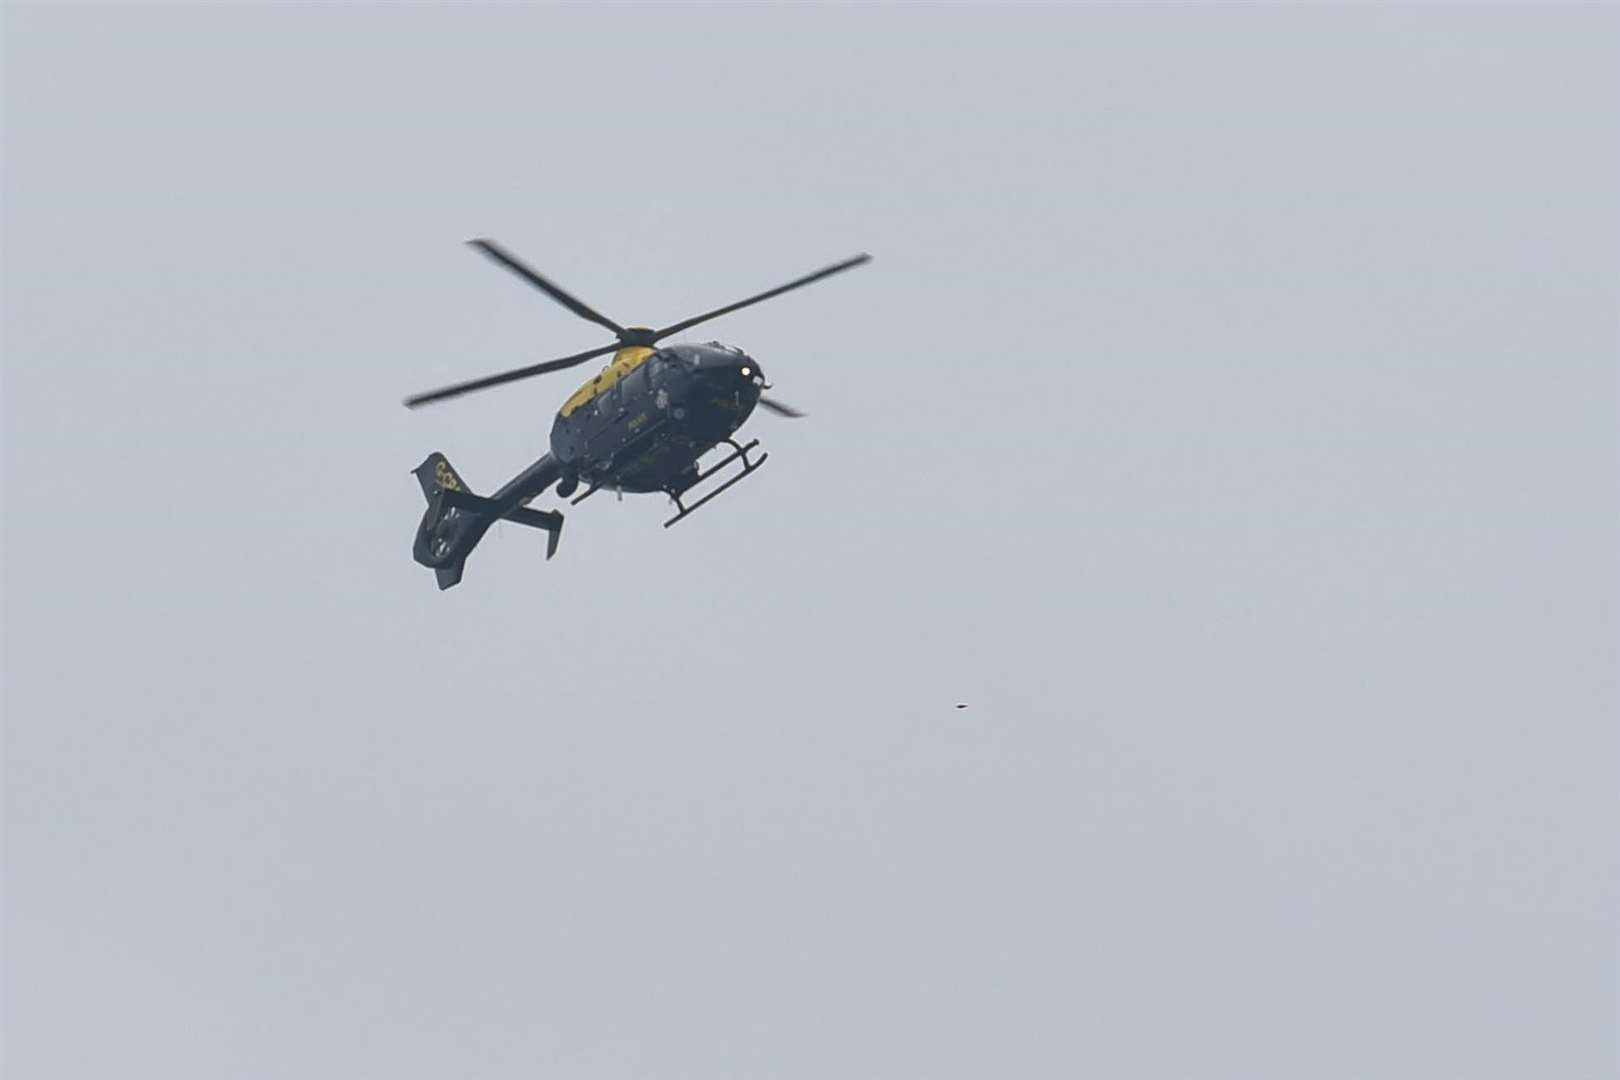 The police helicopter circled above Bapchild in the early hours. Stock picture